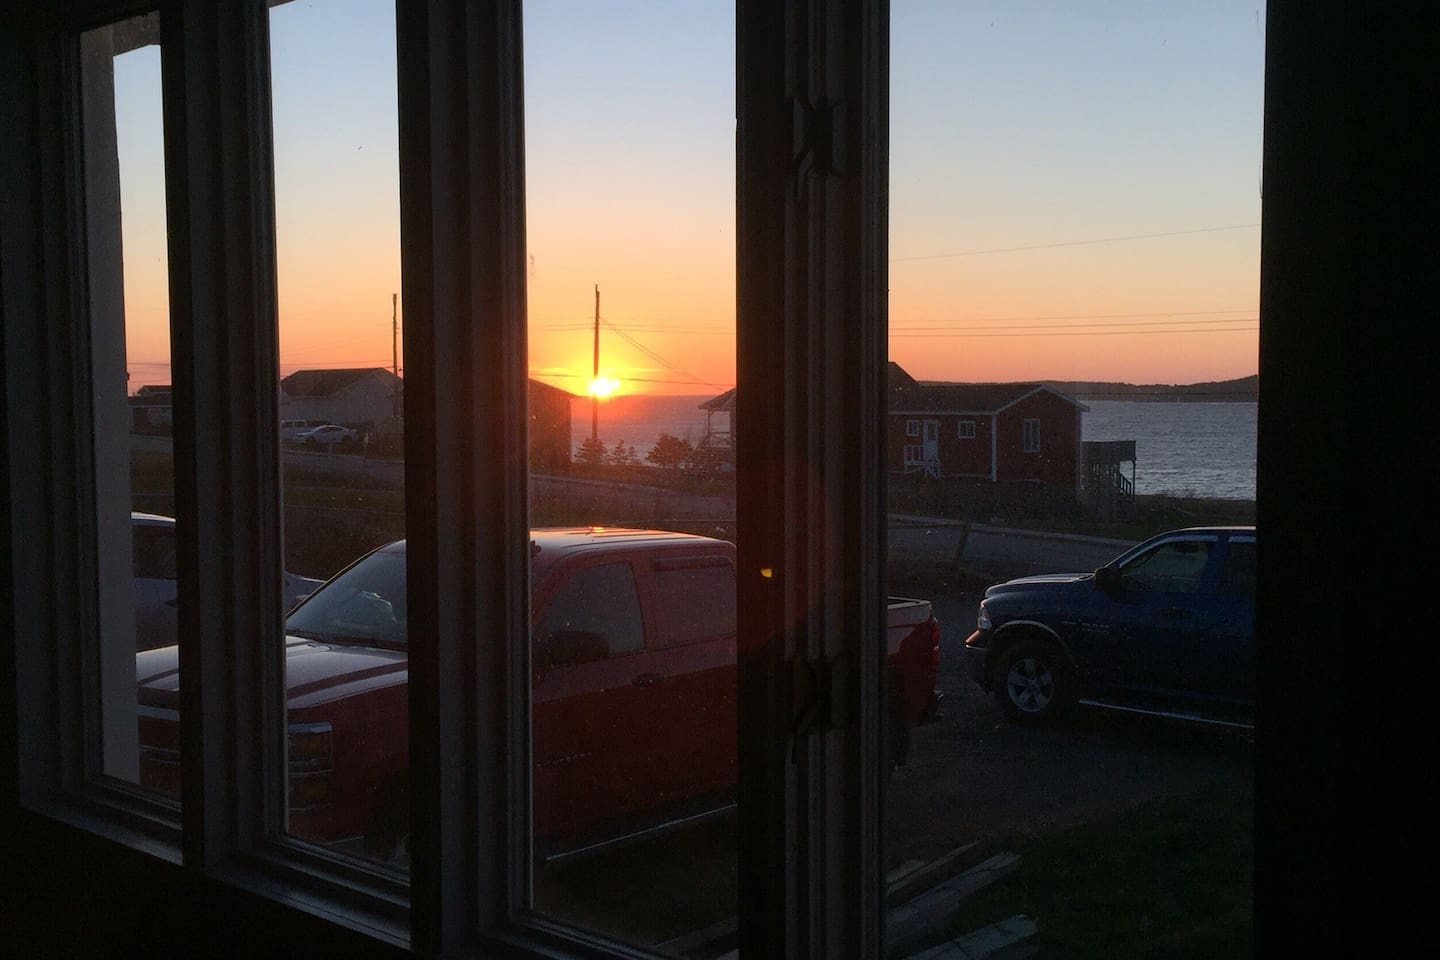 Sunset view from the living room window